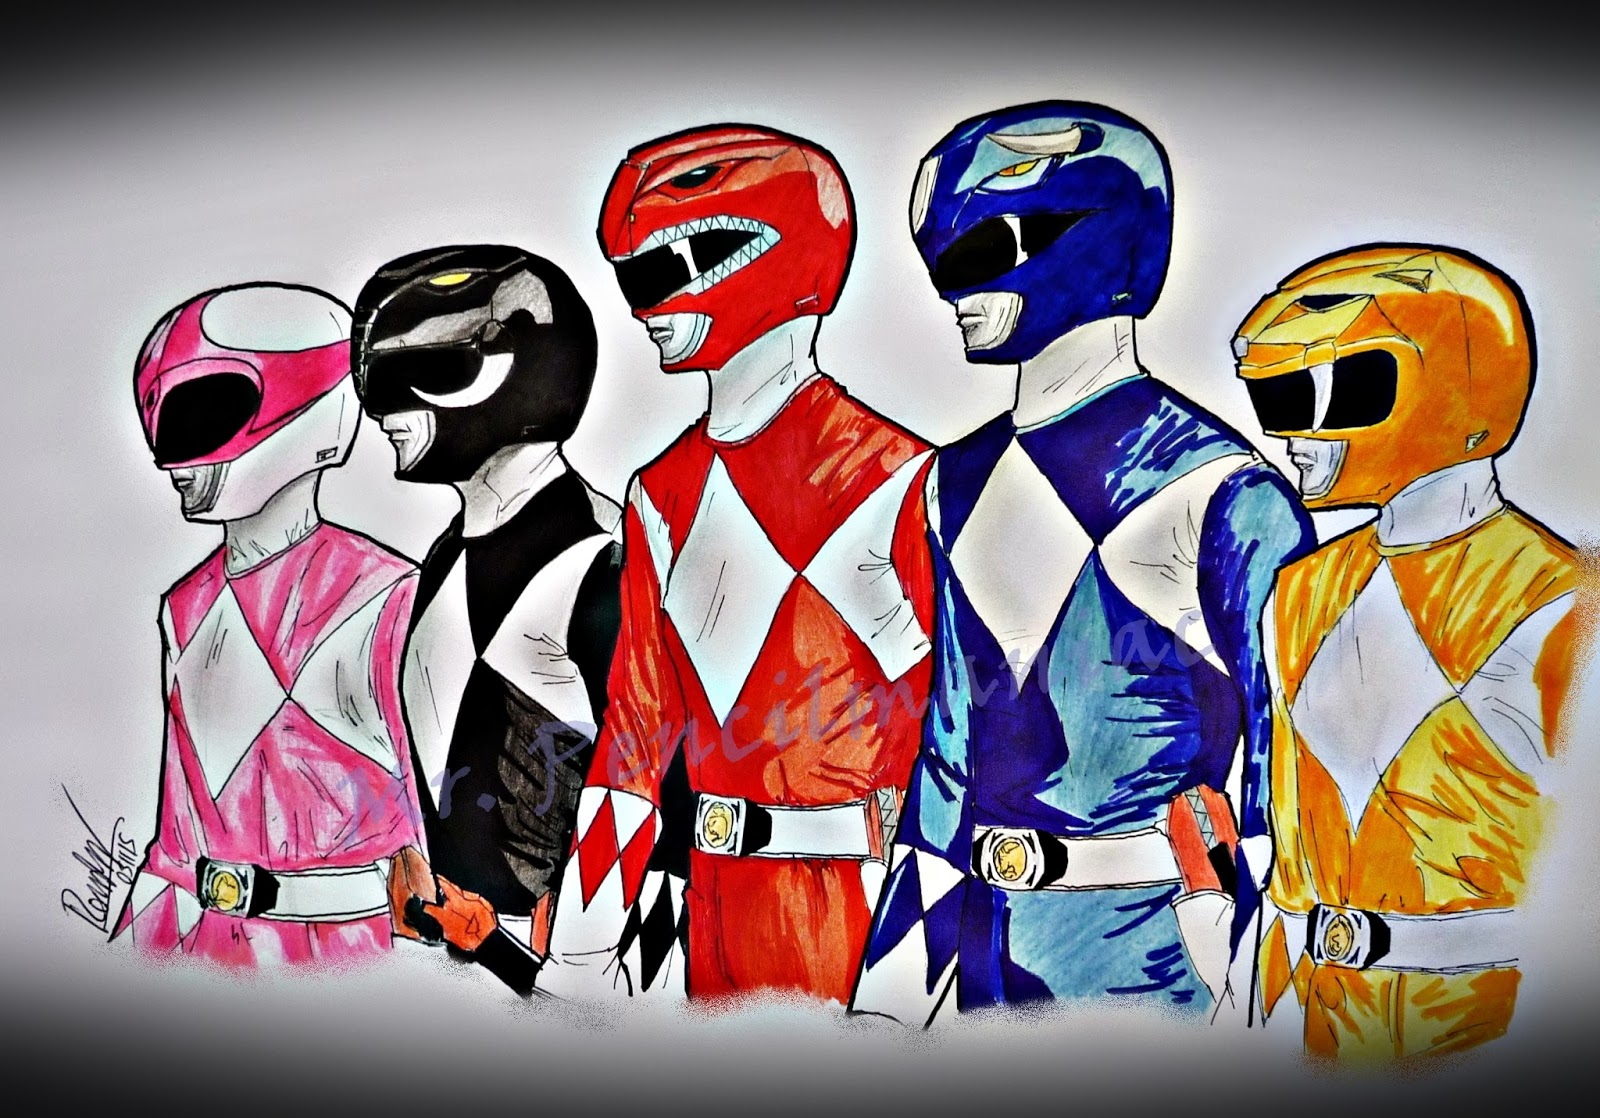 Go, go, Power Rangers! | Mr. Pencilmaniac